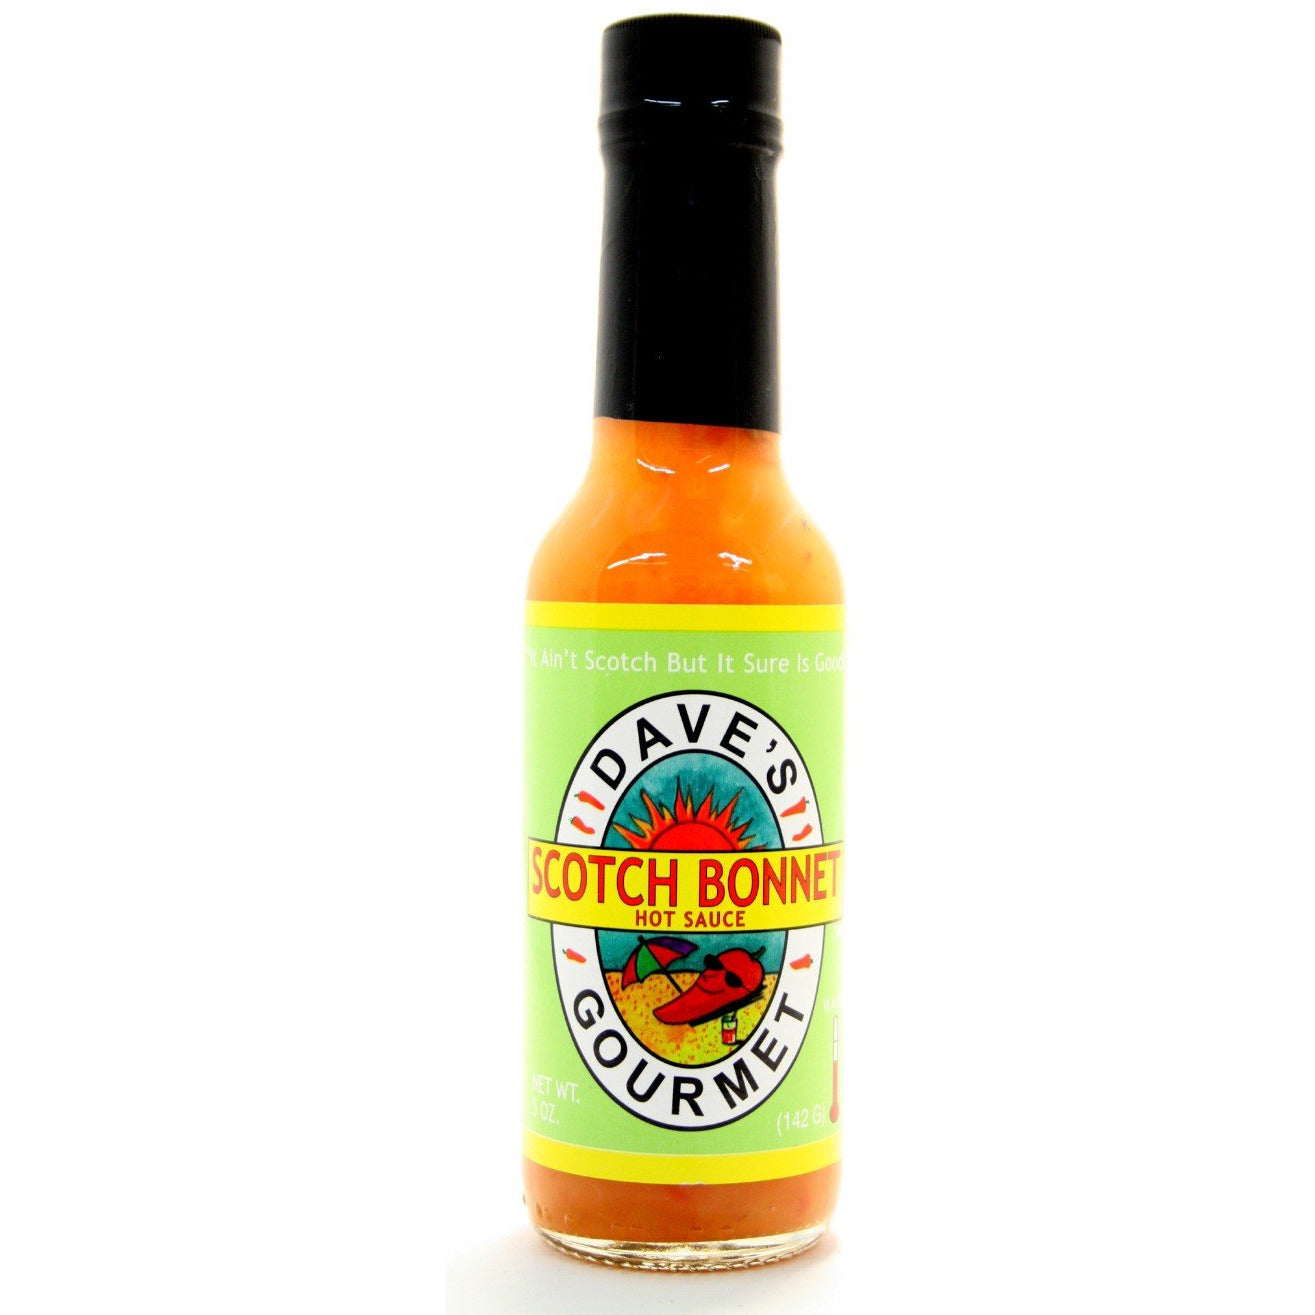 Daves Scotch Bonnet 148ml